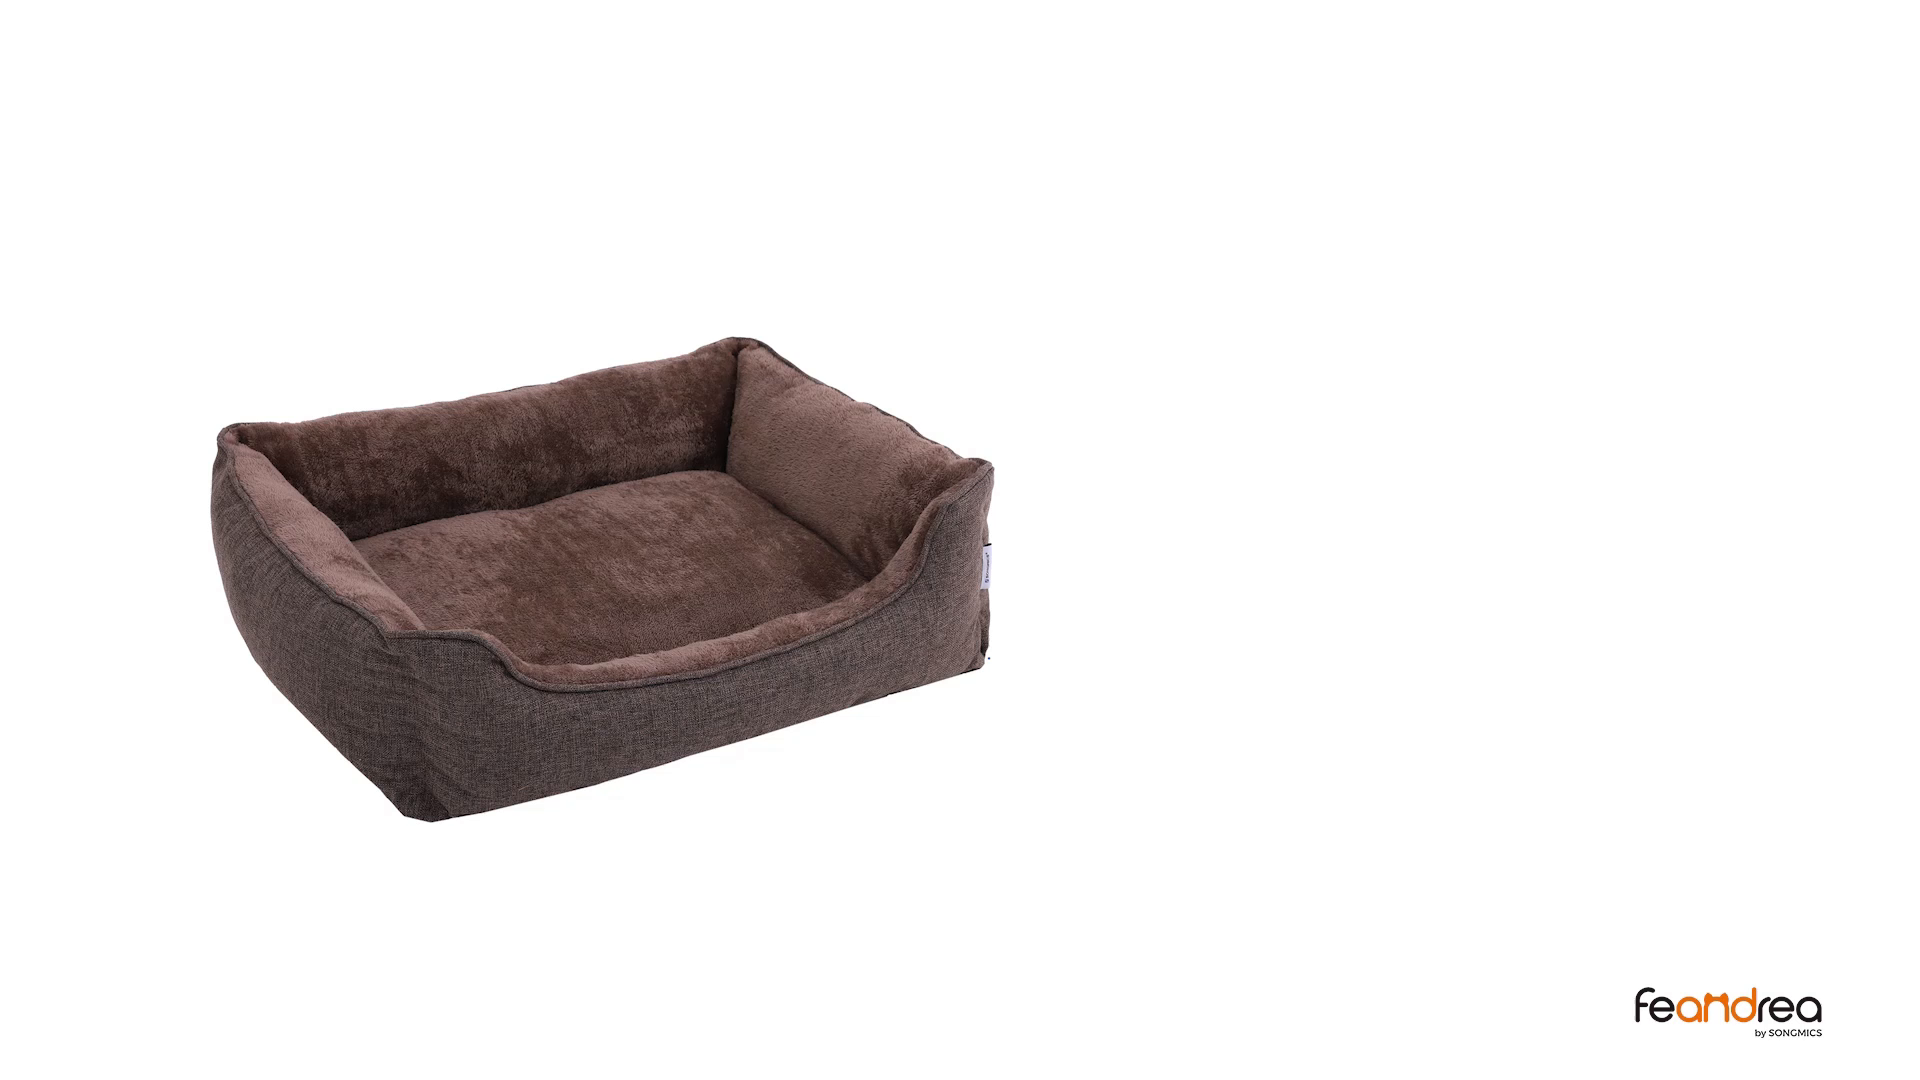 FEANDREA Washable Plush Dog Bed with Removable Cover, Dog Sofa, Brown PGW10CC 7